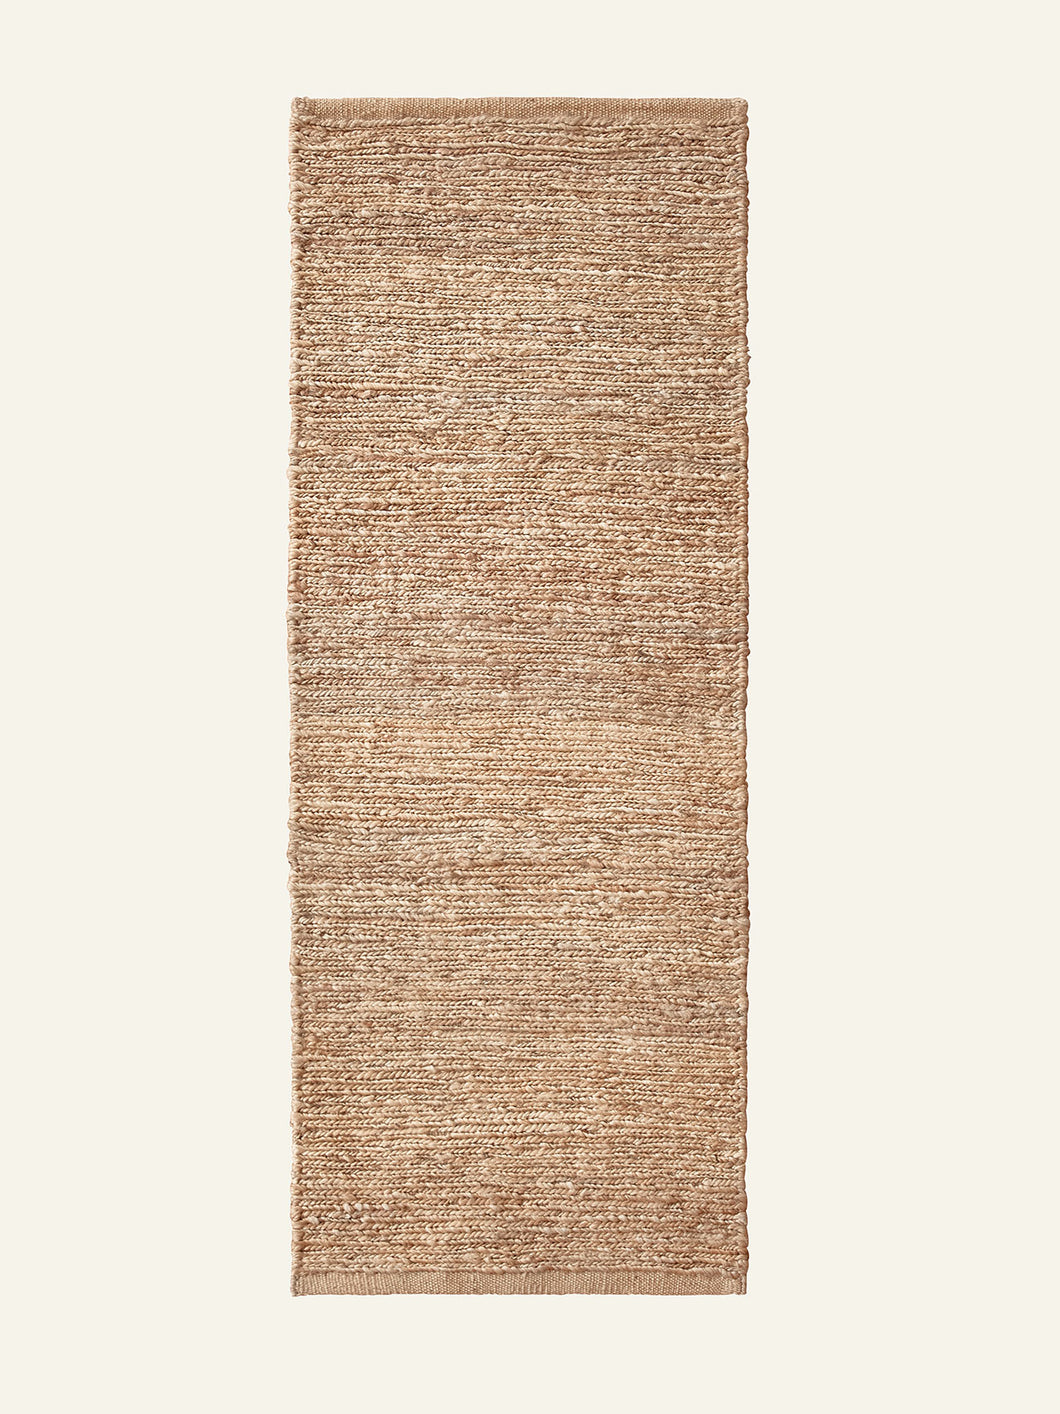 RIVER MAT IN NATURAL, 1'8